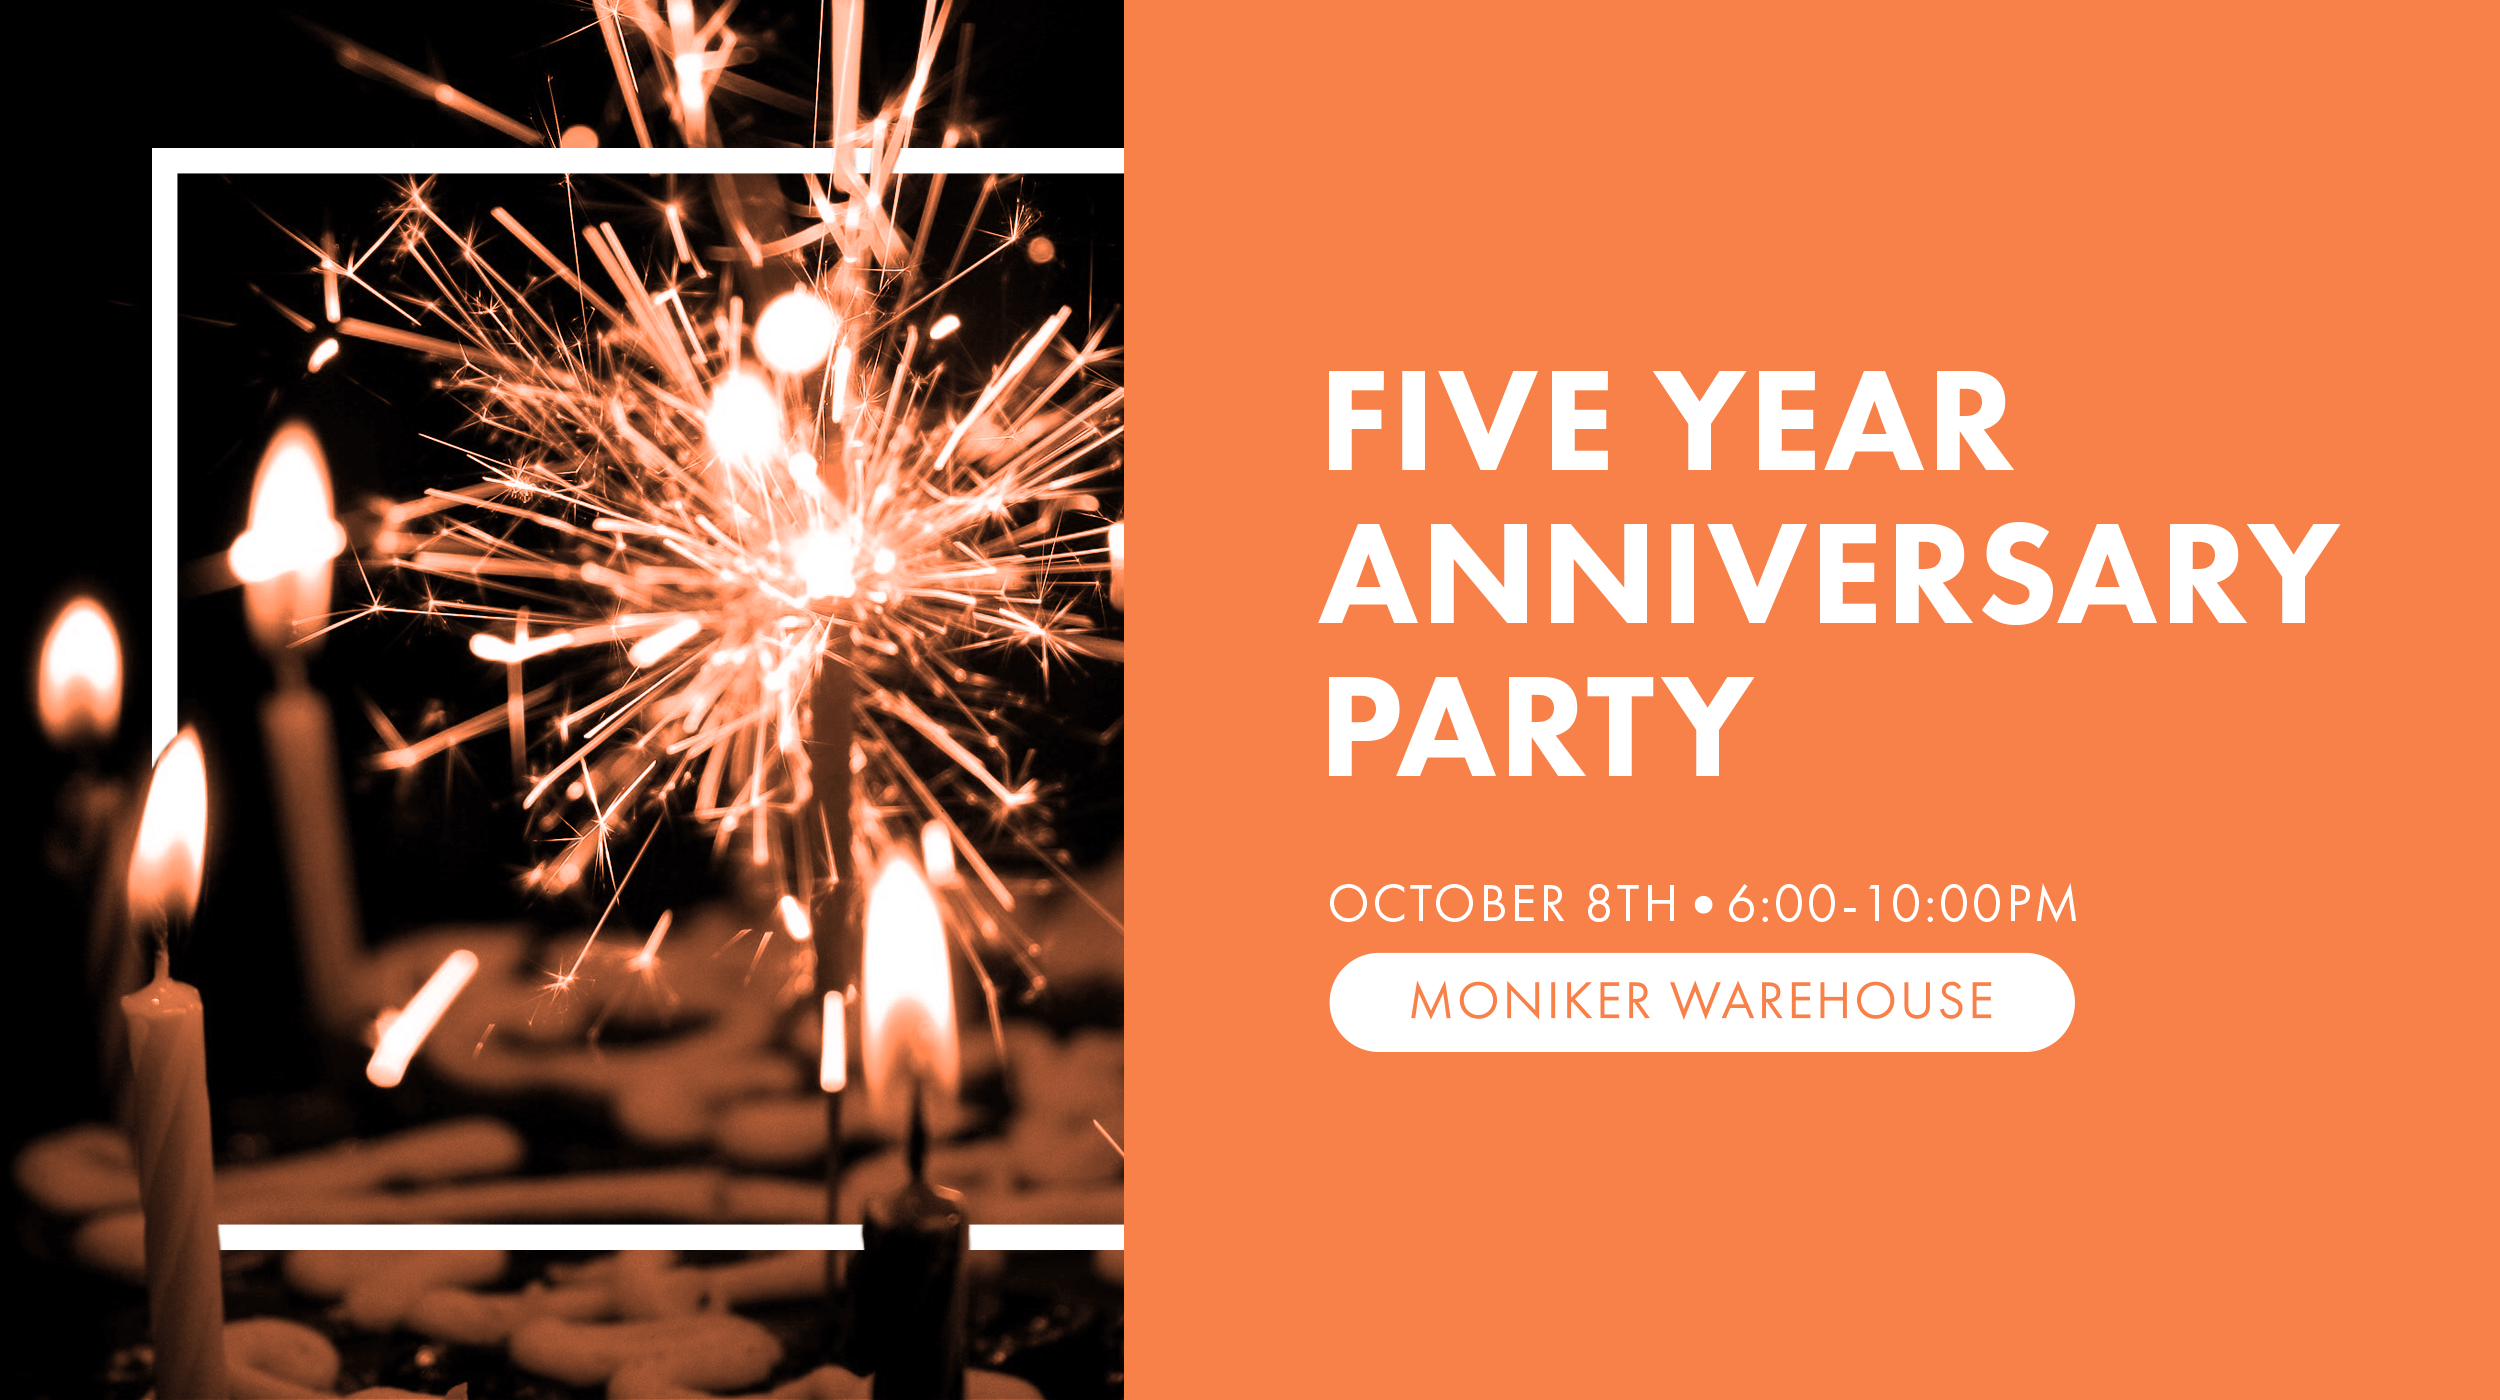 Five year anniversary party